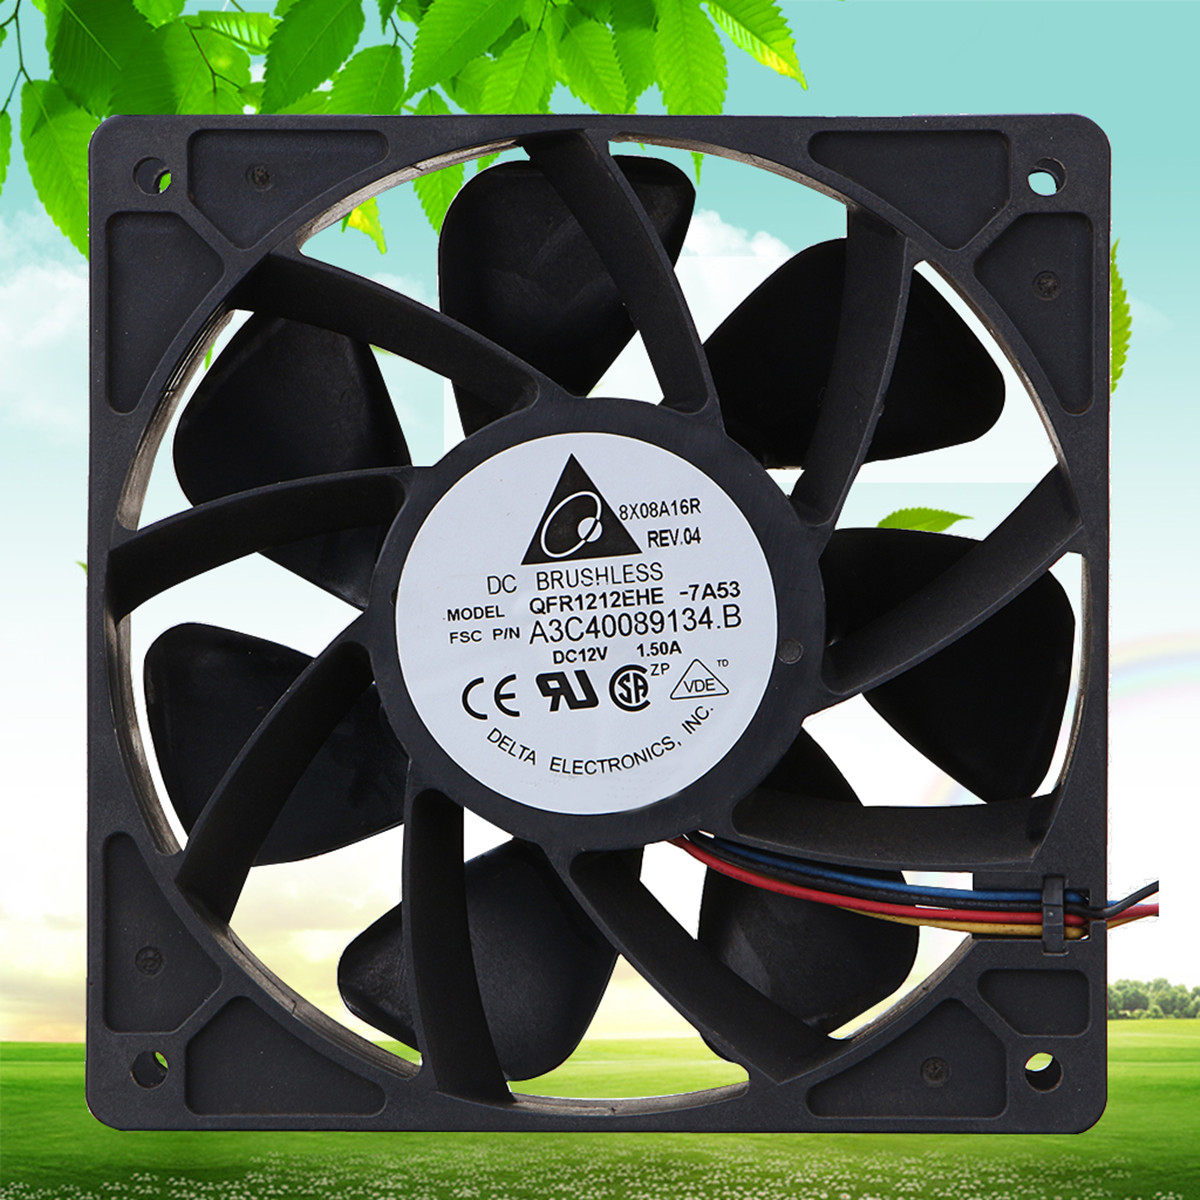 New Black Computer Cooling Cooler fan For BTC 6000RPM Cooling Fan Replacement 4-pin Connector For Antminer Bitmain S7 S9 new f12738 127mm axial cooling fan large air flow 3650rpm two ball bearing 12v 10w fan cooler 3 pin fan connector cooling system